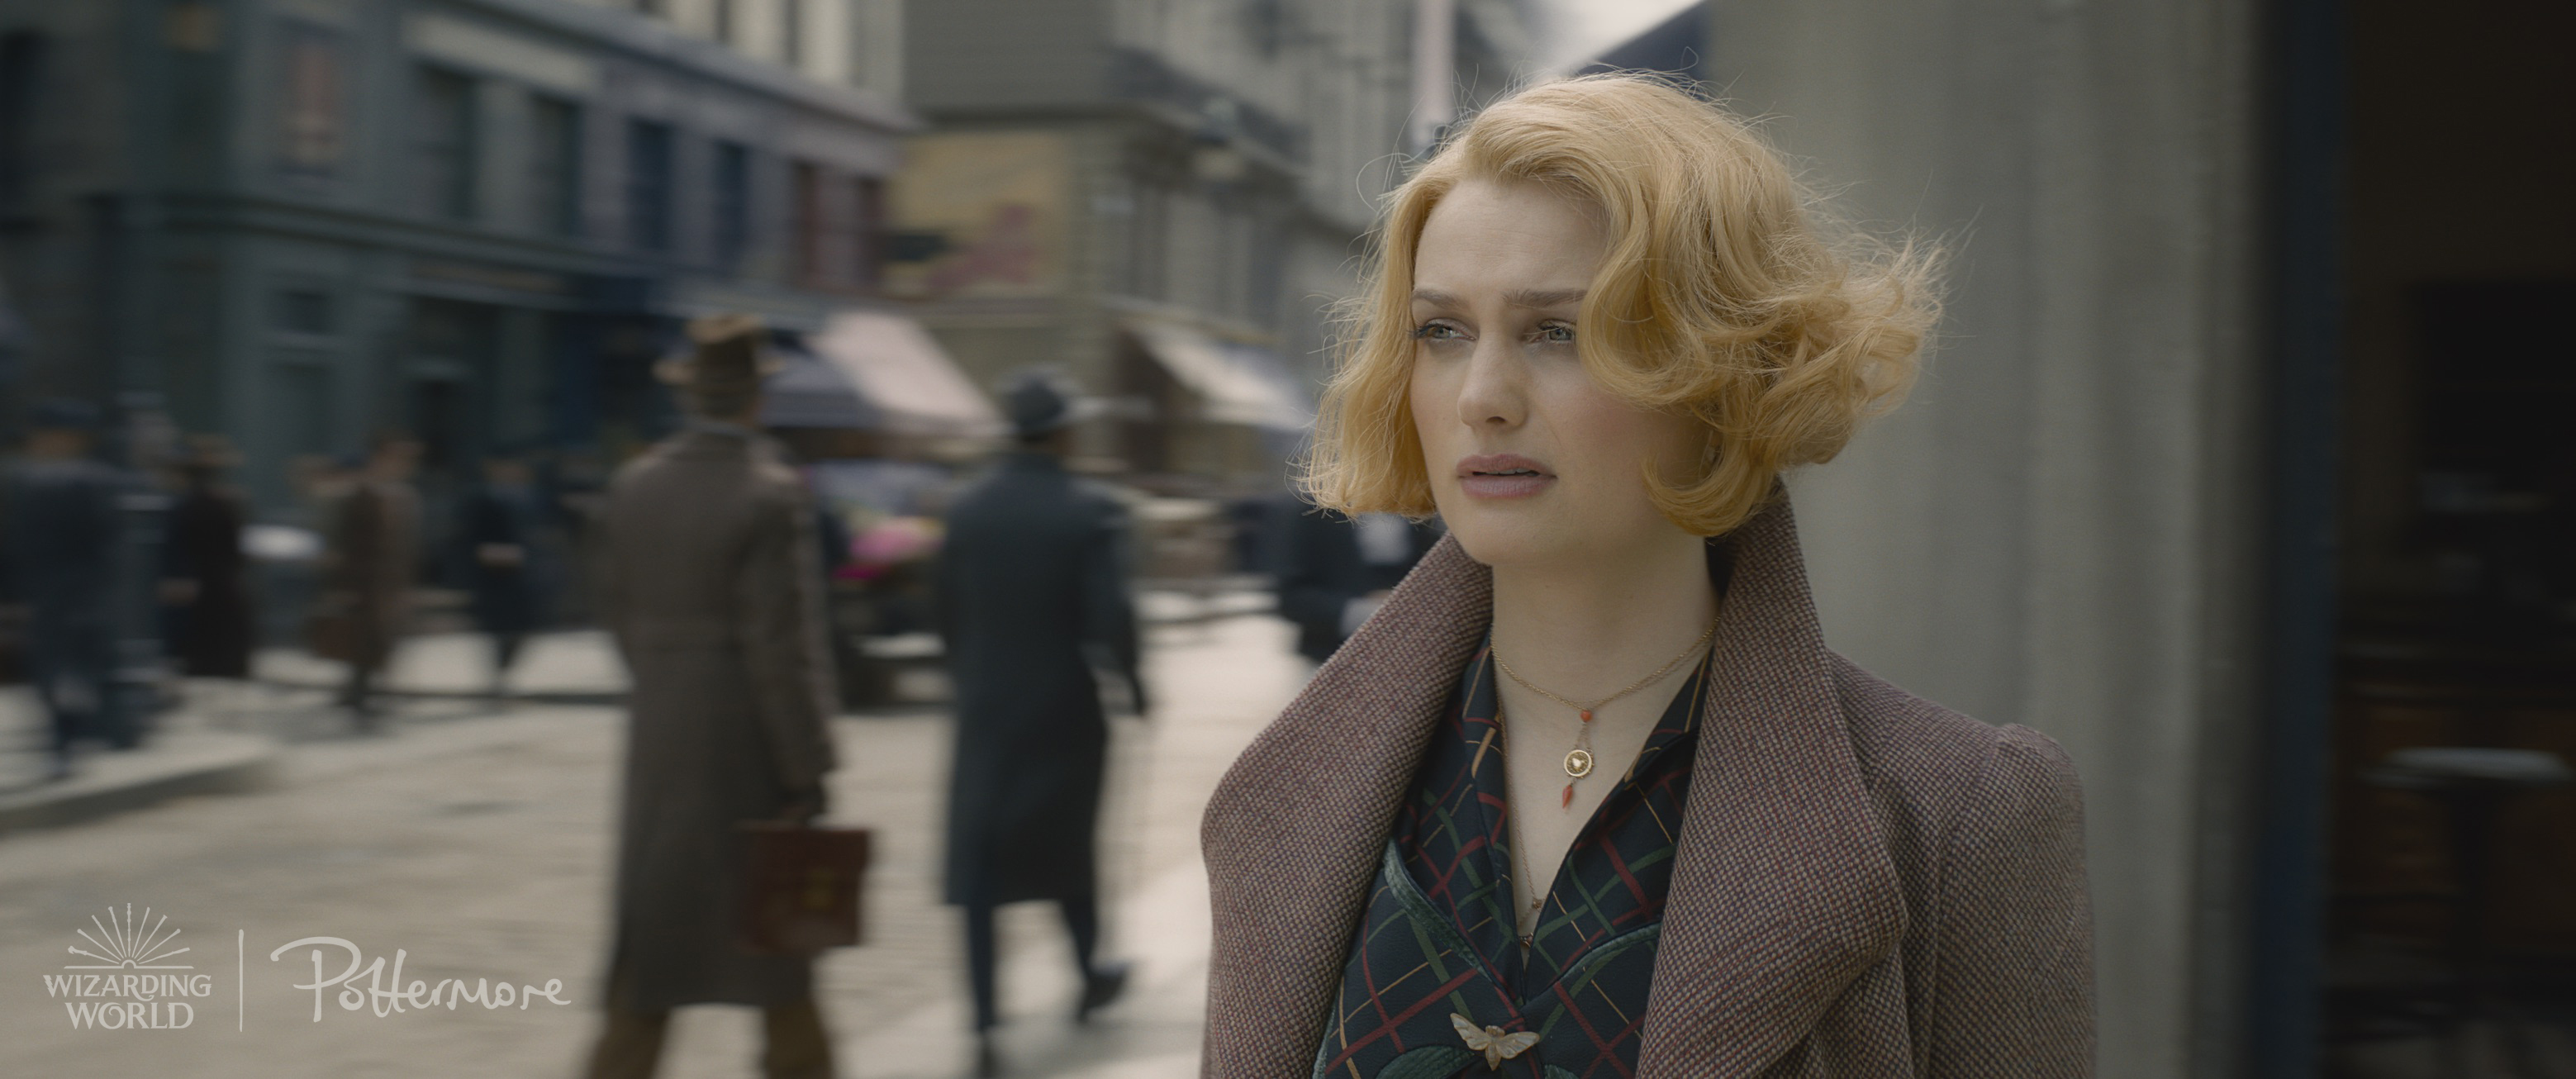 Queenie Goldstein in the trailer for Fantastic Beasts: Crimes of Grindelwald